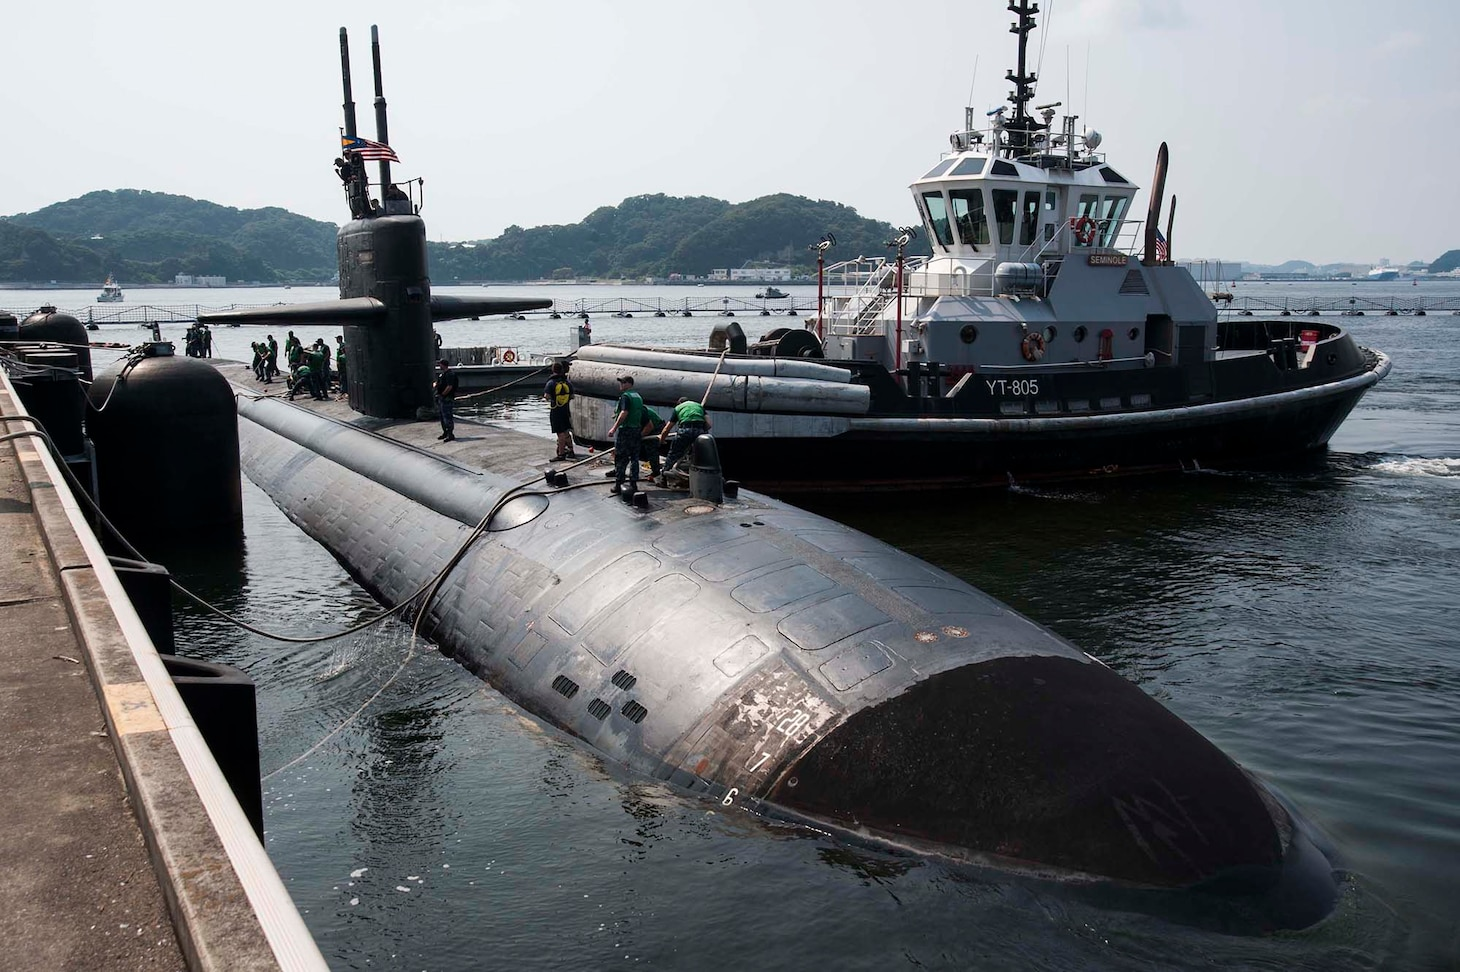 160712-N-ED185-022 FLEET ACTIVITIES YOKOSUKA, Japan (July 12, 2016) - The Los Angeles-class attack submarine USS Key West (SSN 722) prepares to moor at Fleet Activities Yokosuka. Key West is visiting Yokosuka for a port visit. U.S. Navy port visits represent an important opportunity to promote stability and security in the Indo-Asia-Pacific region, demonstrate commitment to regional partners and foster relationships. (U.S. Navy photo by Mass Communication Specialist 2nd Class Brian G. Reynolds/Released)